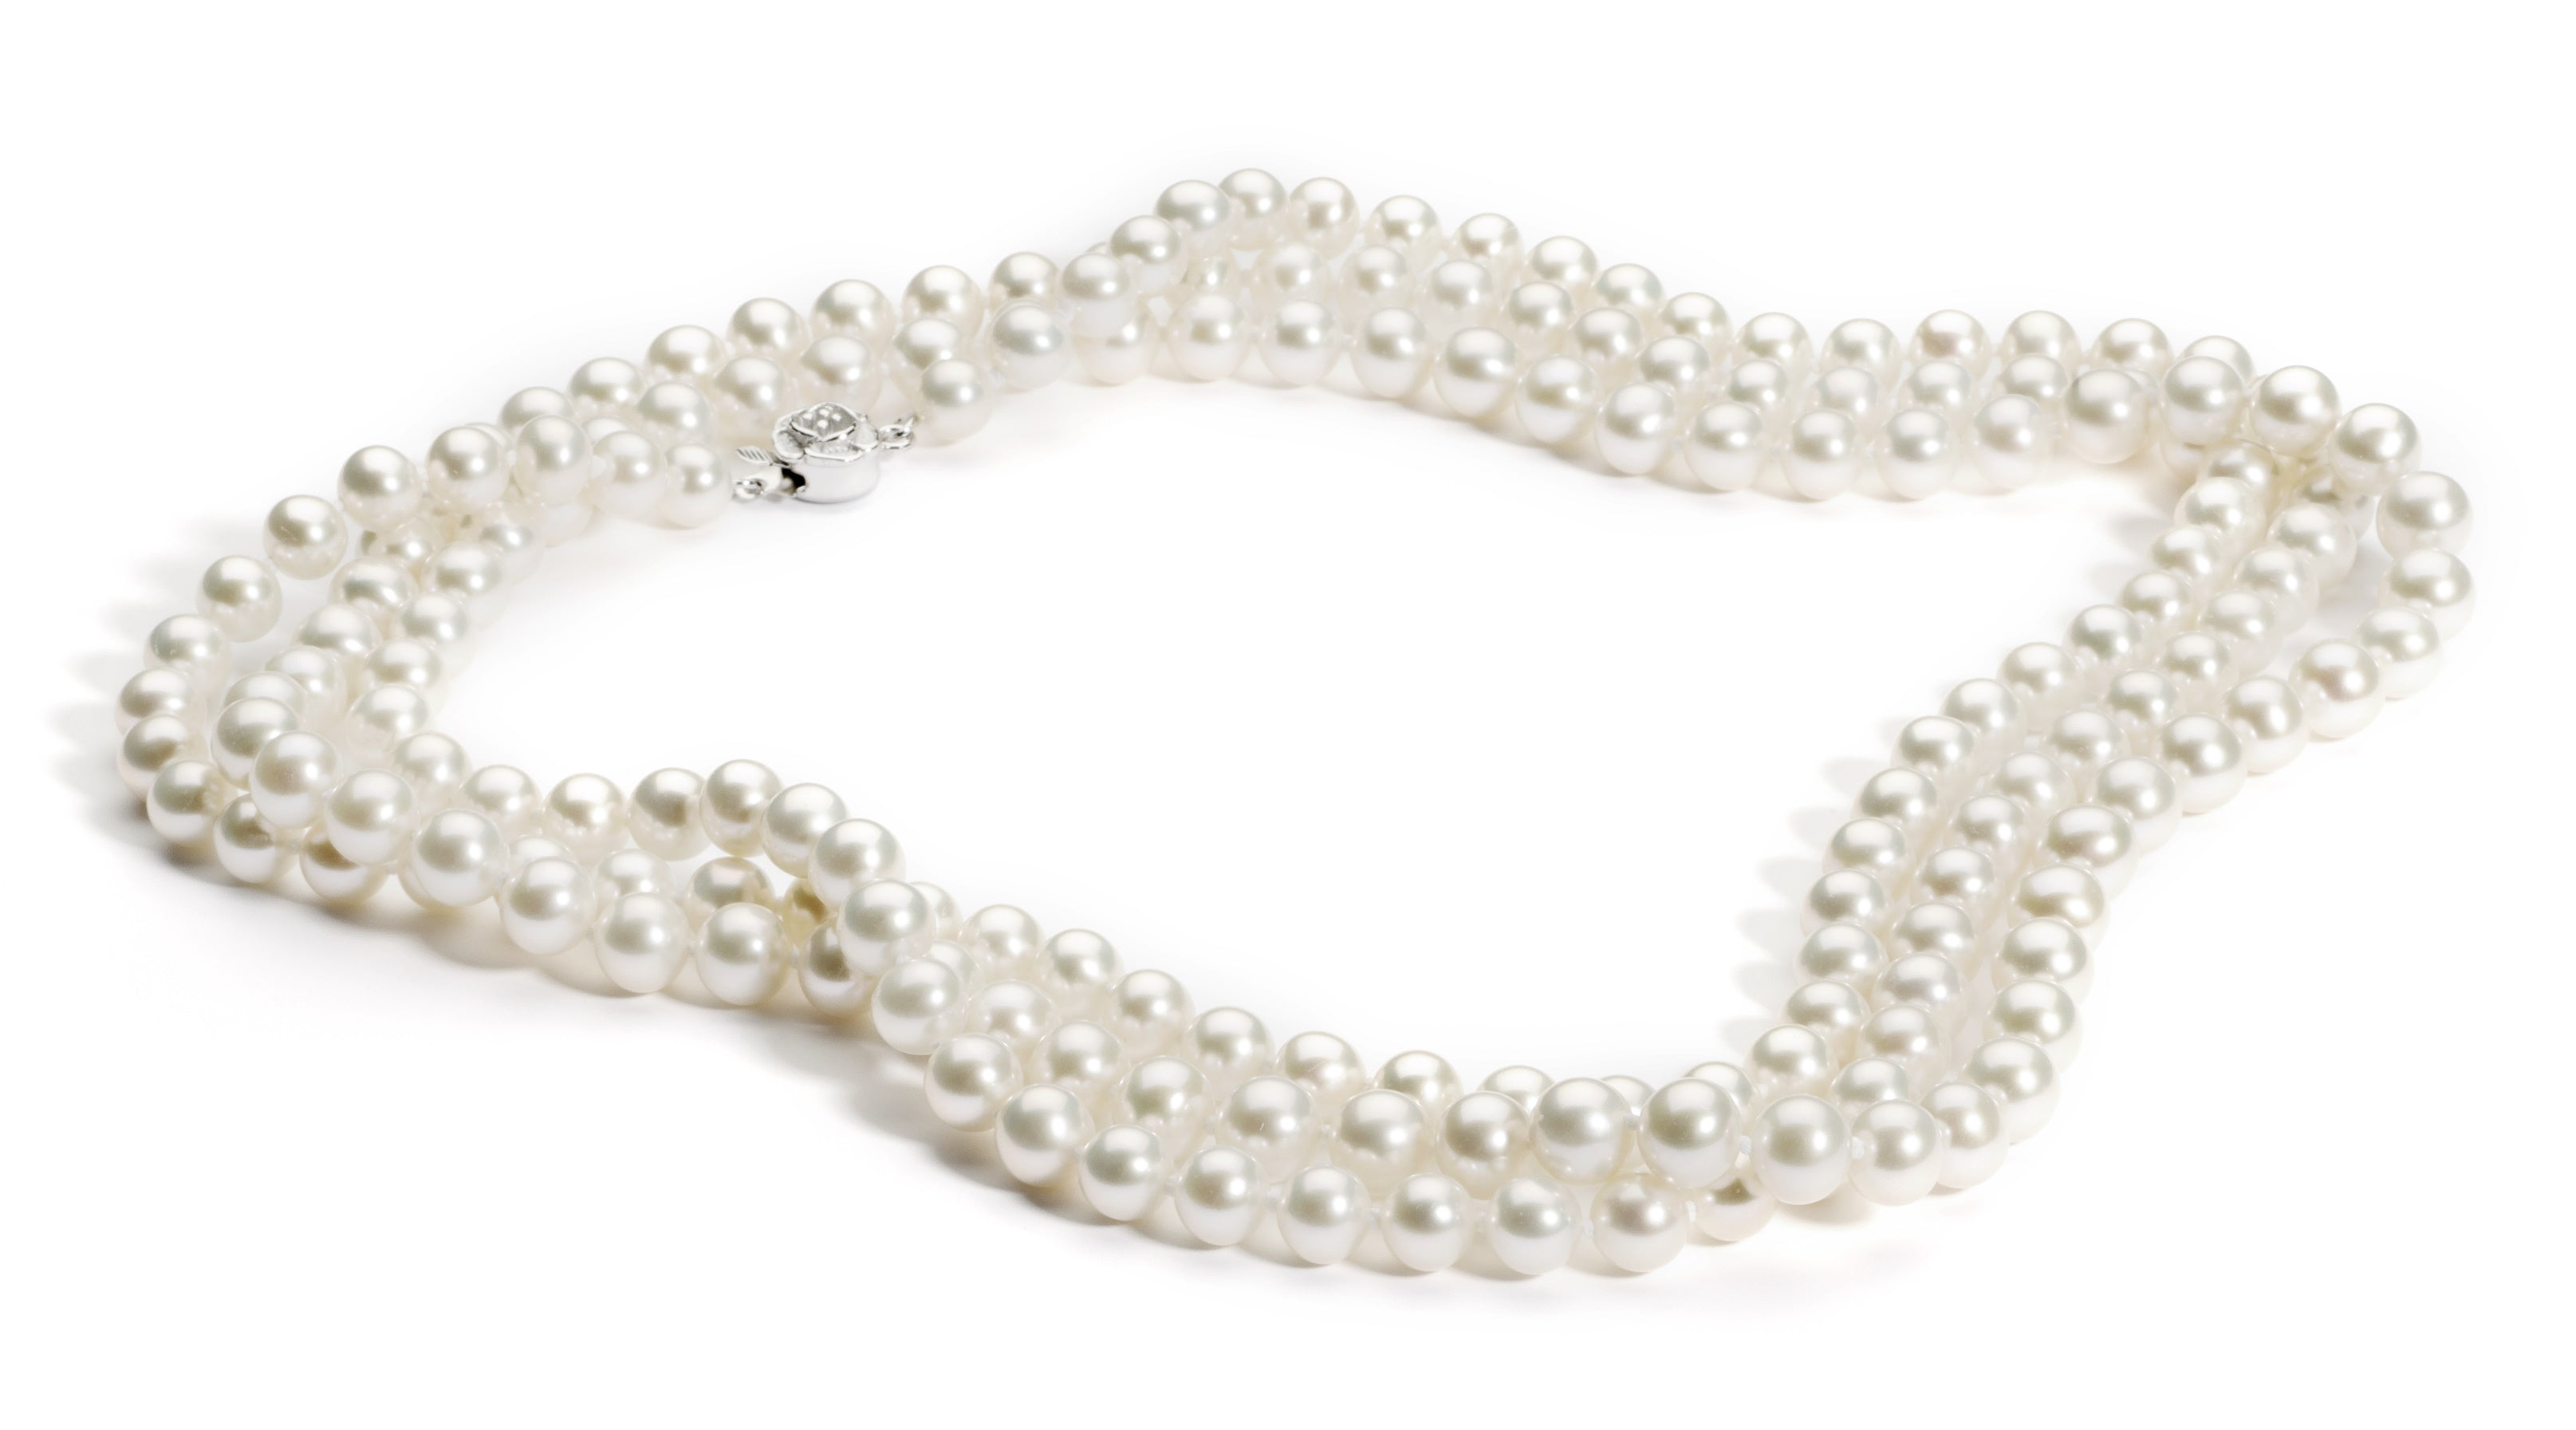 7.0-8.0 mm 52 Inch White Freshwater Pearl Necklace